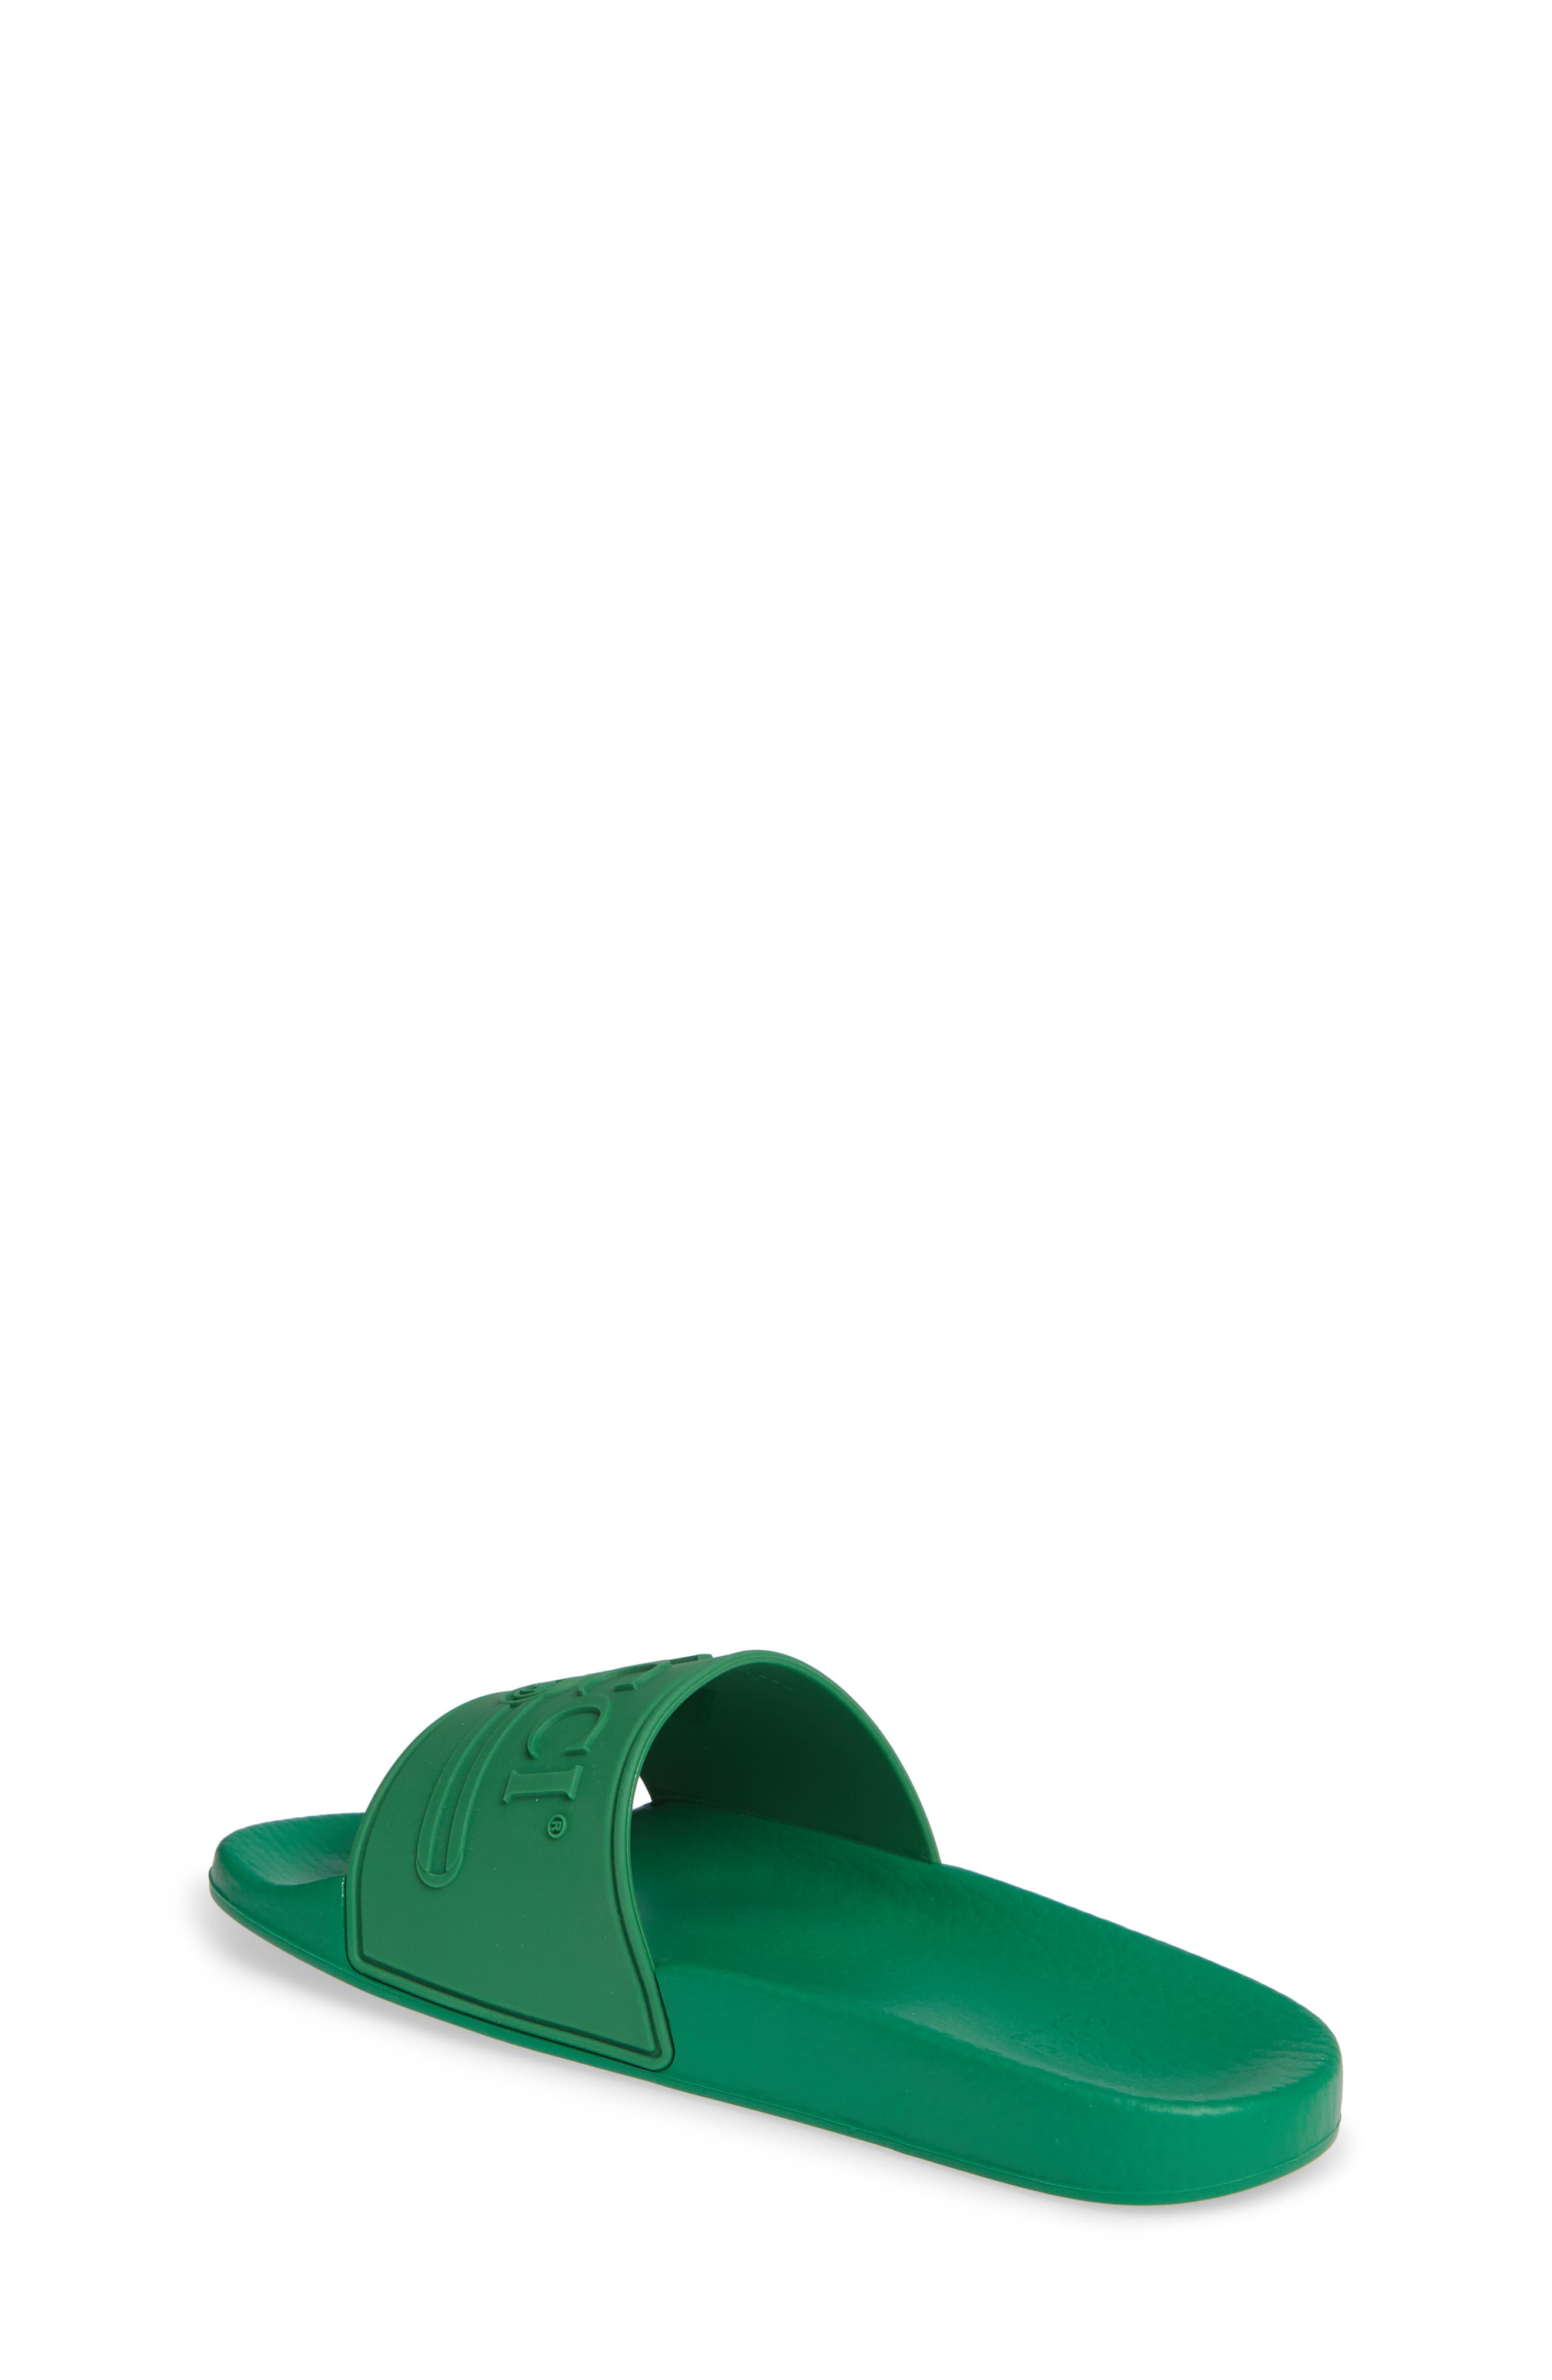 GUCCI, Pursuit Logo Slide Sandal, Alternate thumbnail 2, color, SHAMROCK